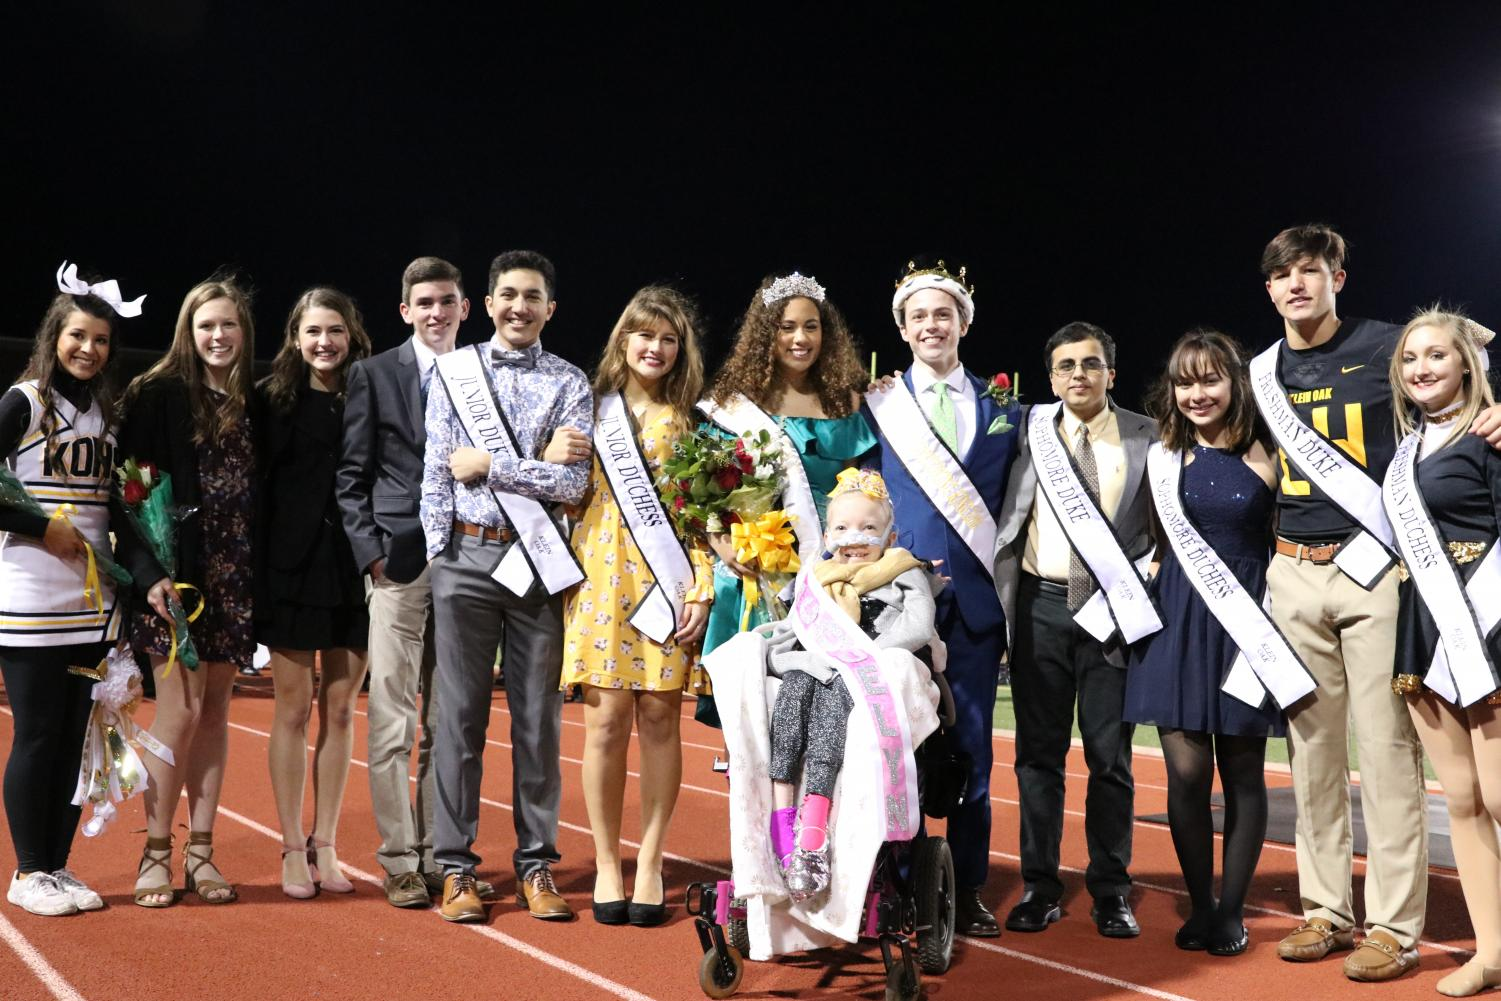 The 2018 Homecoming Court surrounds Jacqueline Dyer after she is crowned as an honorary Homecoming Princess. Dyer's organization namesake, Just for J, was the recipient of $15,000 raised by the Klein Oak community.